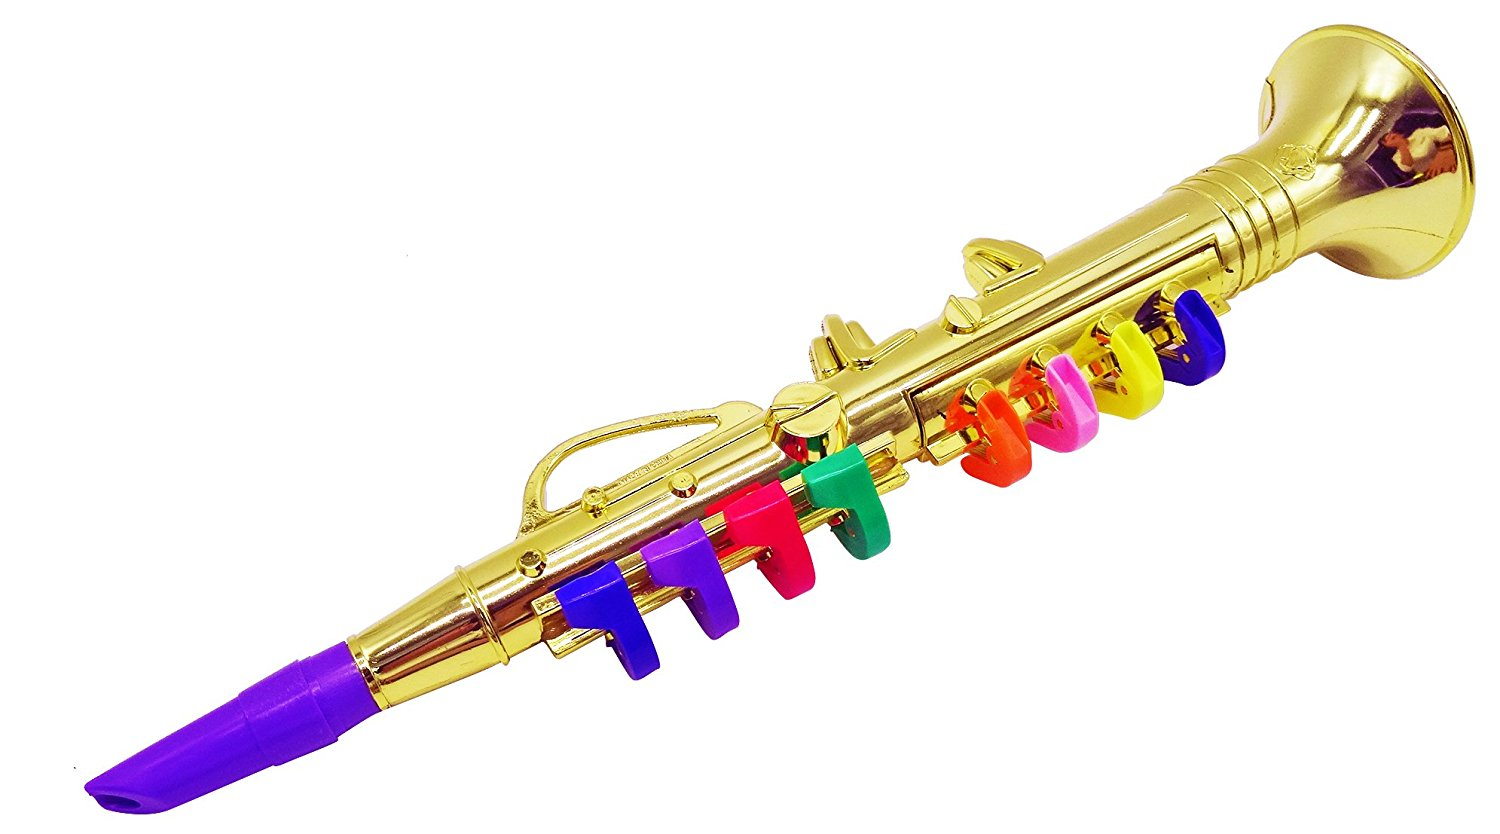 Set of 2 Music Instruments, Saxophone and Clarinet. Combo with over 10 Color Coded Teaching Songs included5